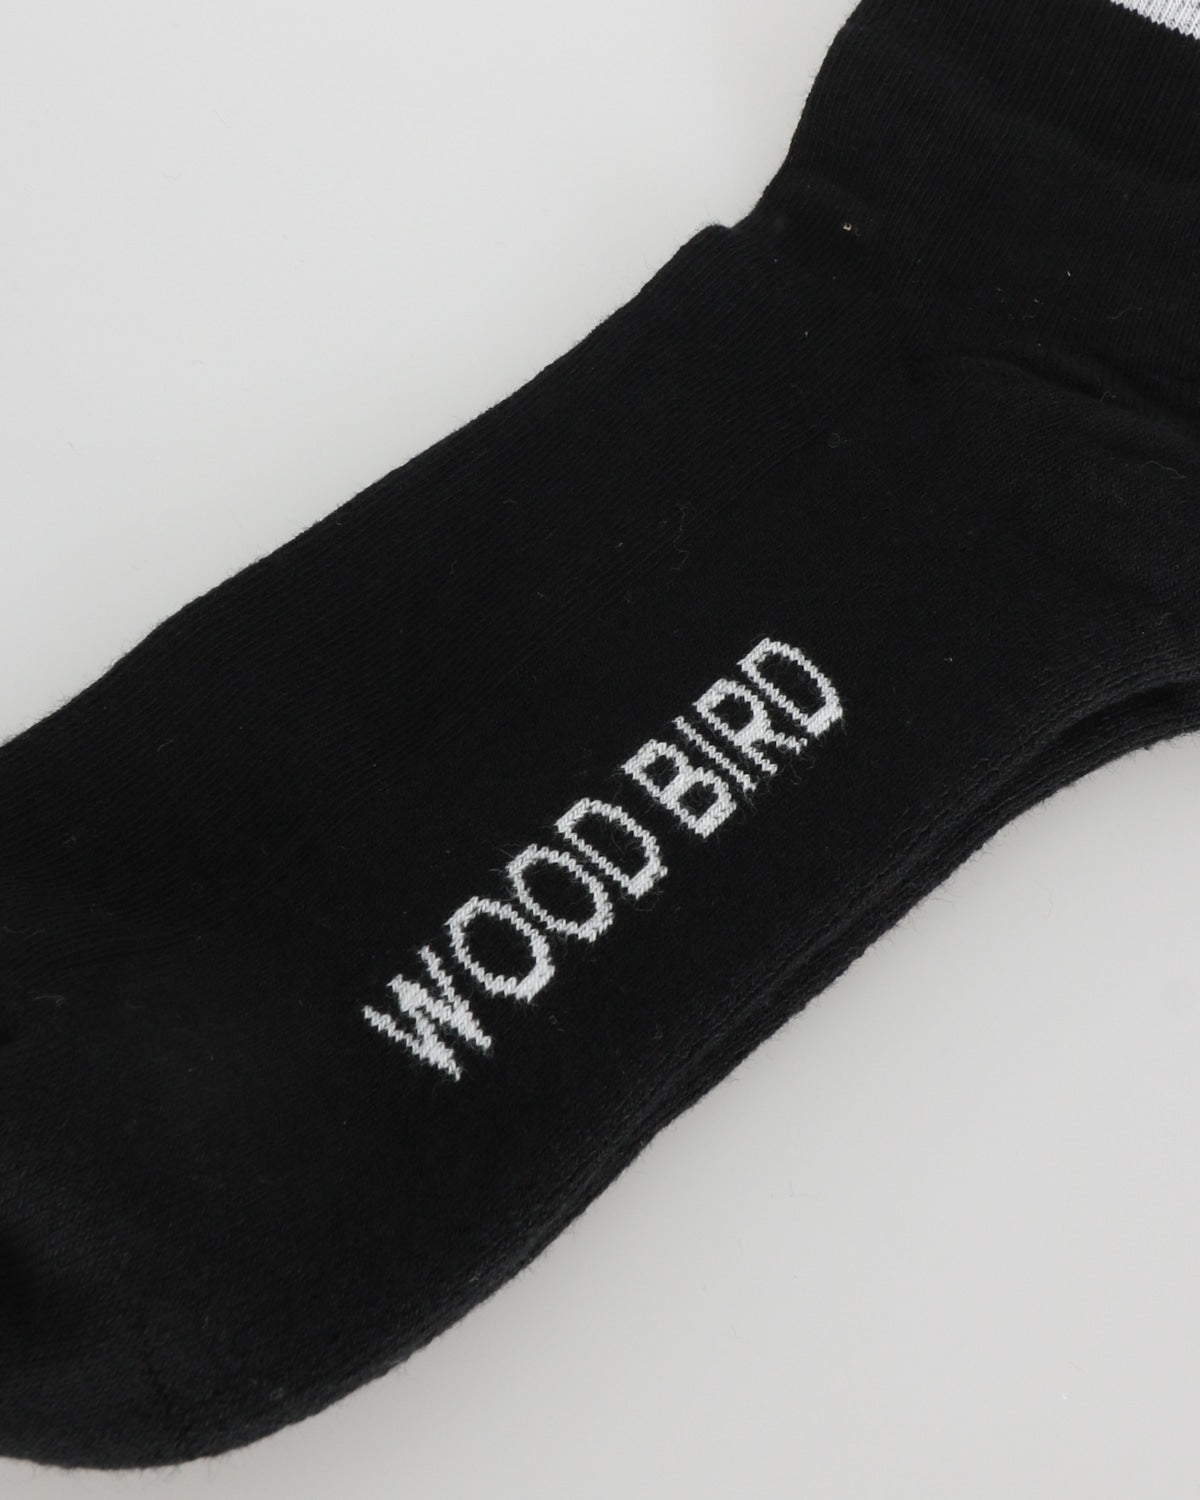 woodbird_tennis socks_black white_2_2